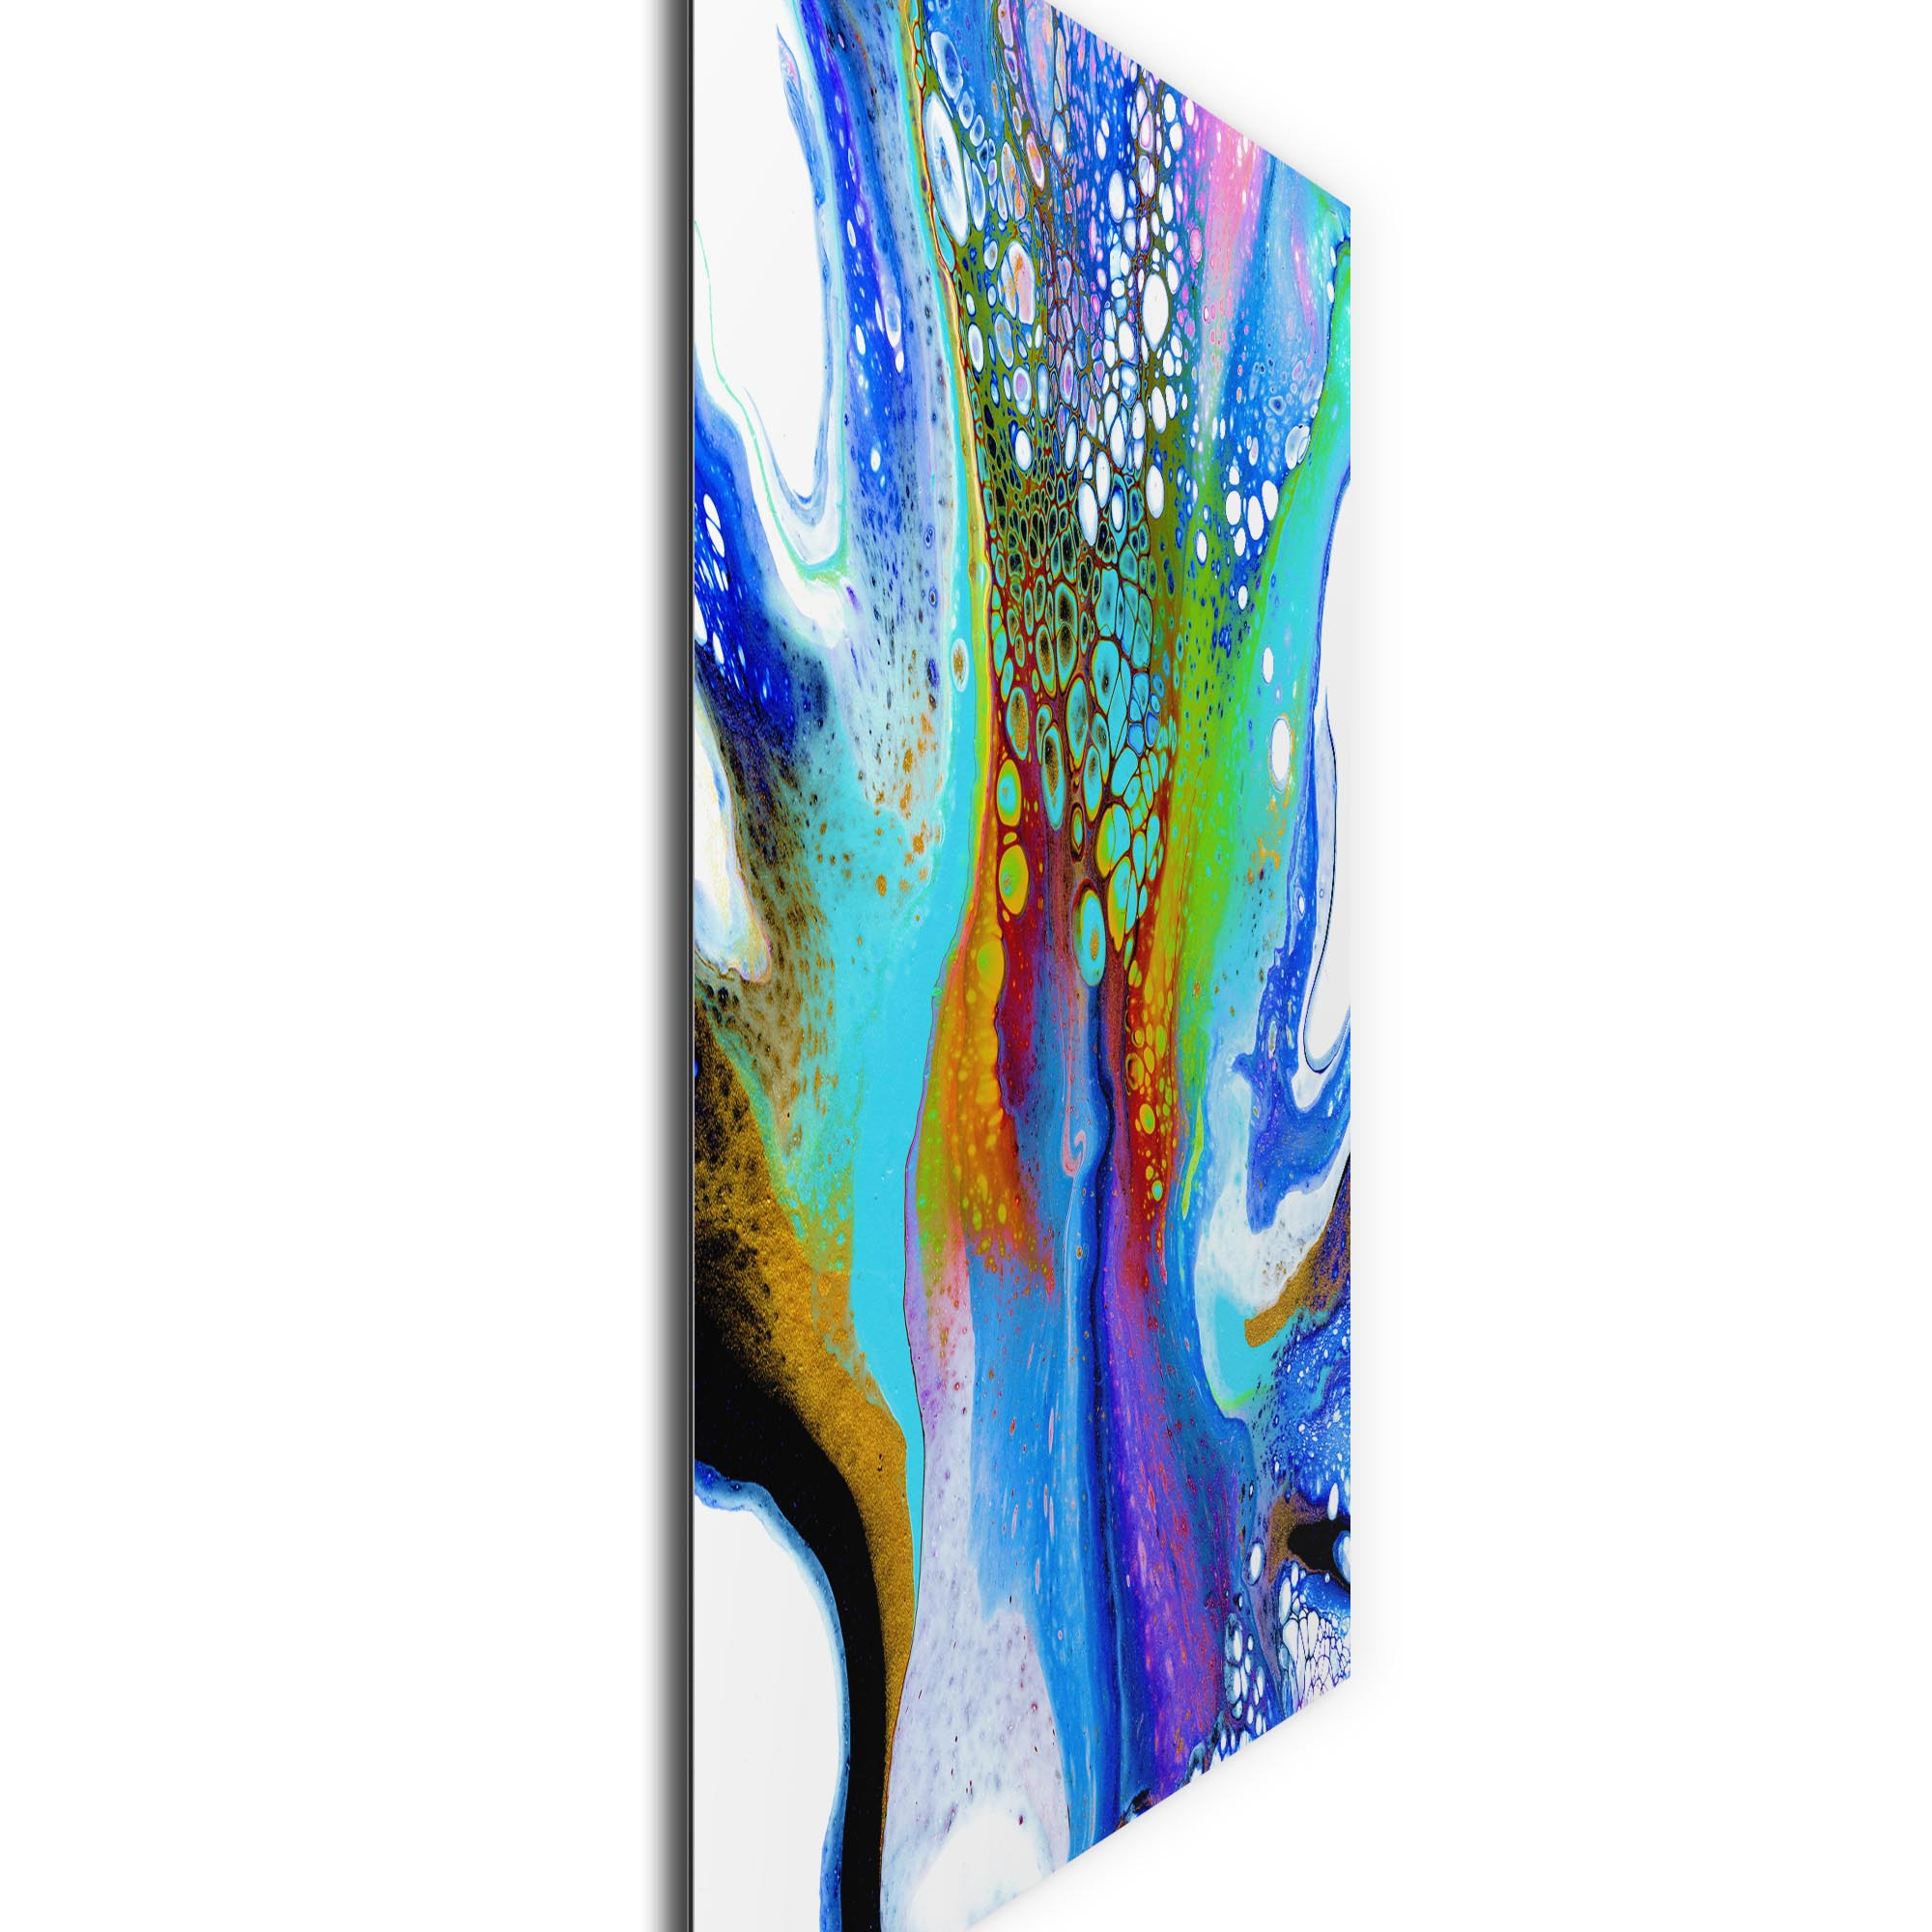 Peacock by Elana Reiter - Abstract Wall Art, Modern Home Decor (36in x 36in) - Image 2